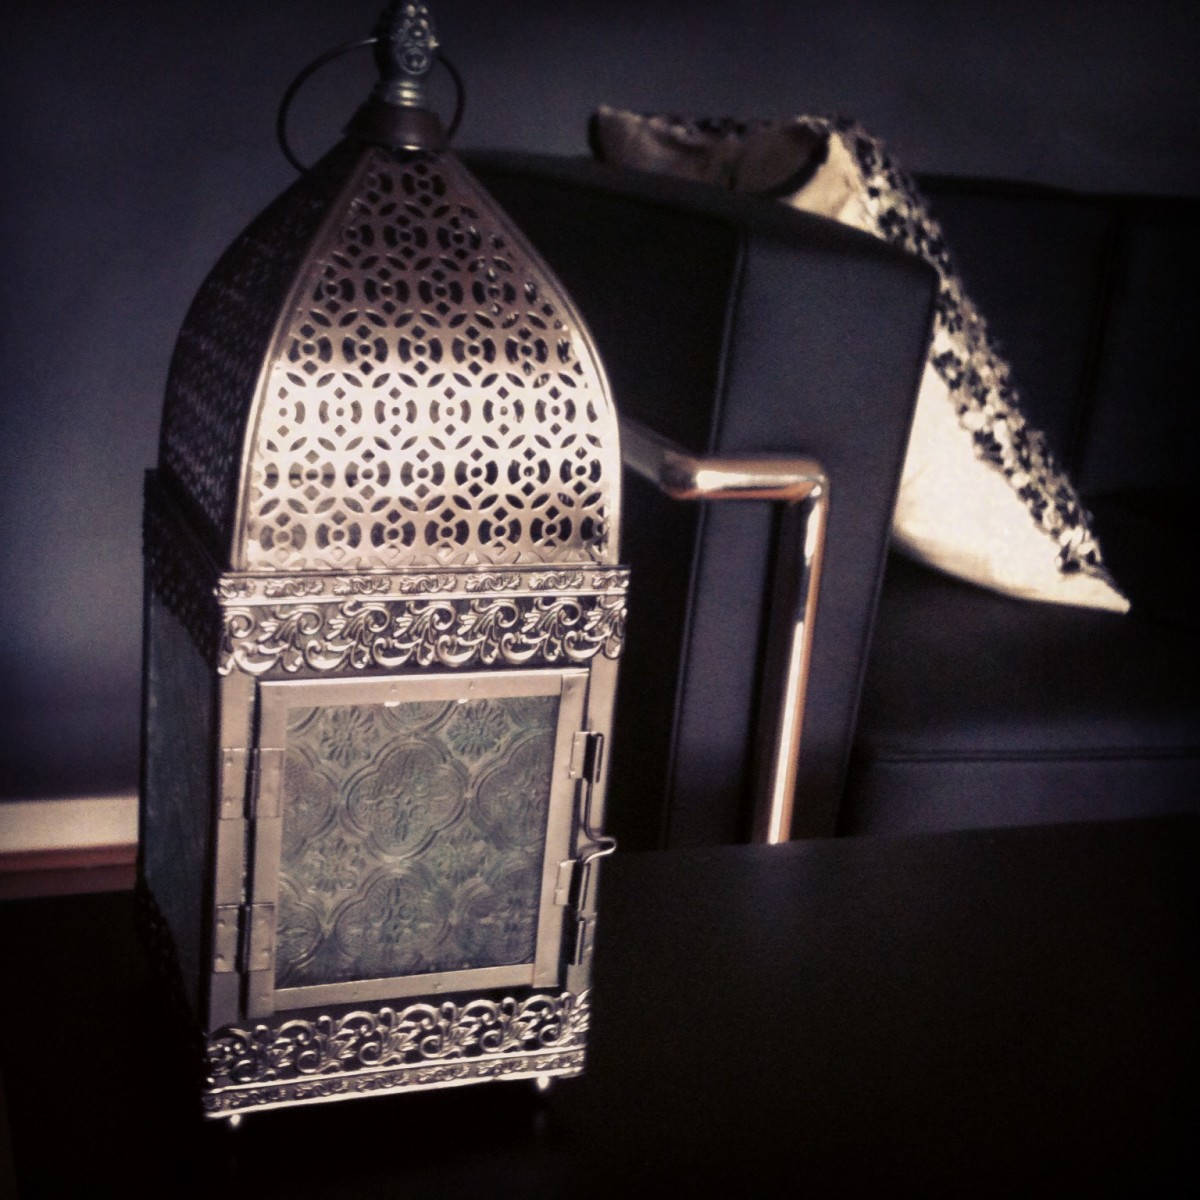 Whether they're situated inside or outside- A Morrocan Lantern can really add a Moorish charm to a room- Whether it's a bachelor pad (pictured) or family home